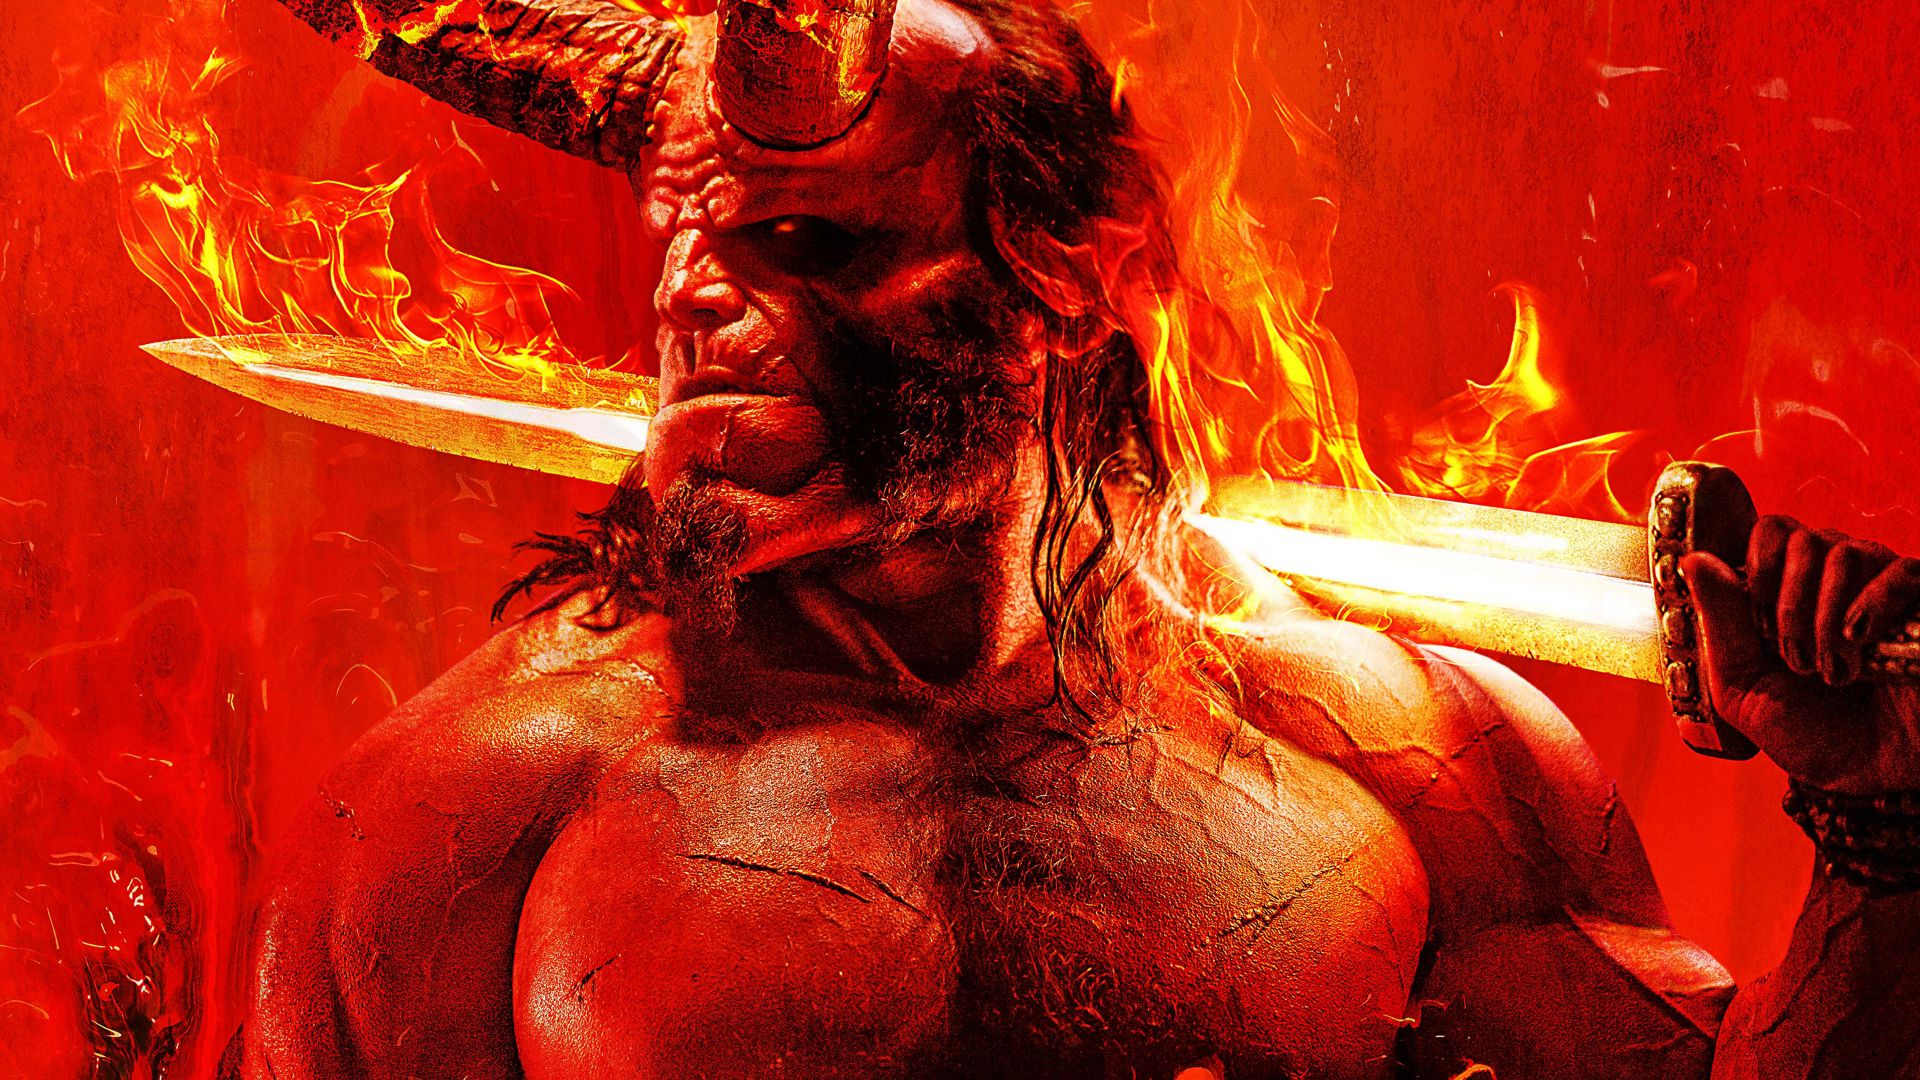 Hellboy, David Harbour, poster, 5K (horizontal)